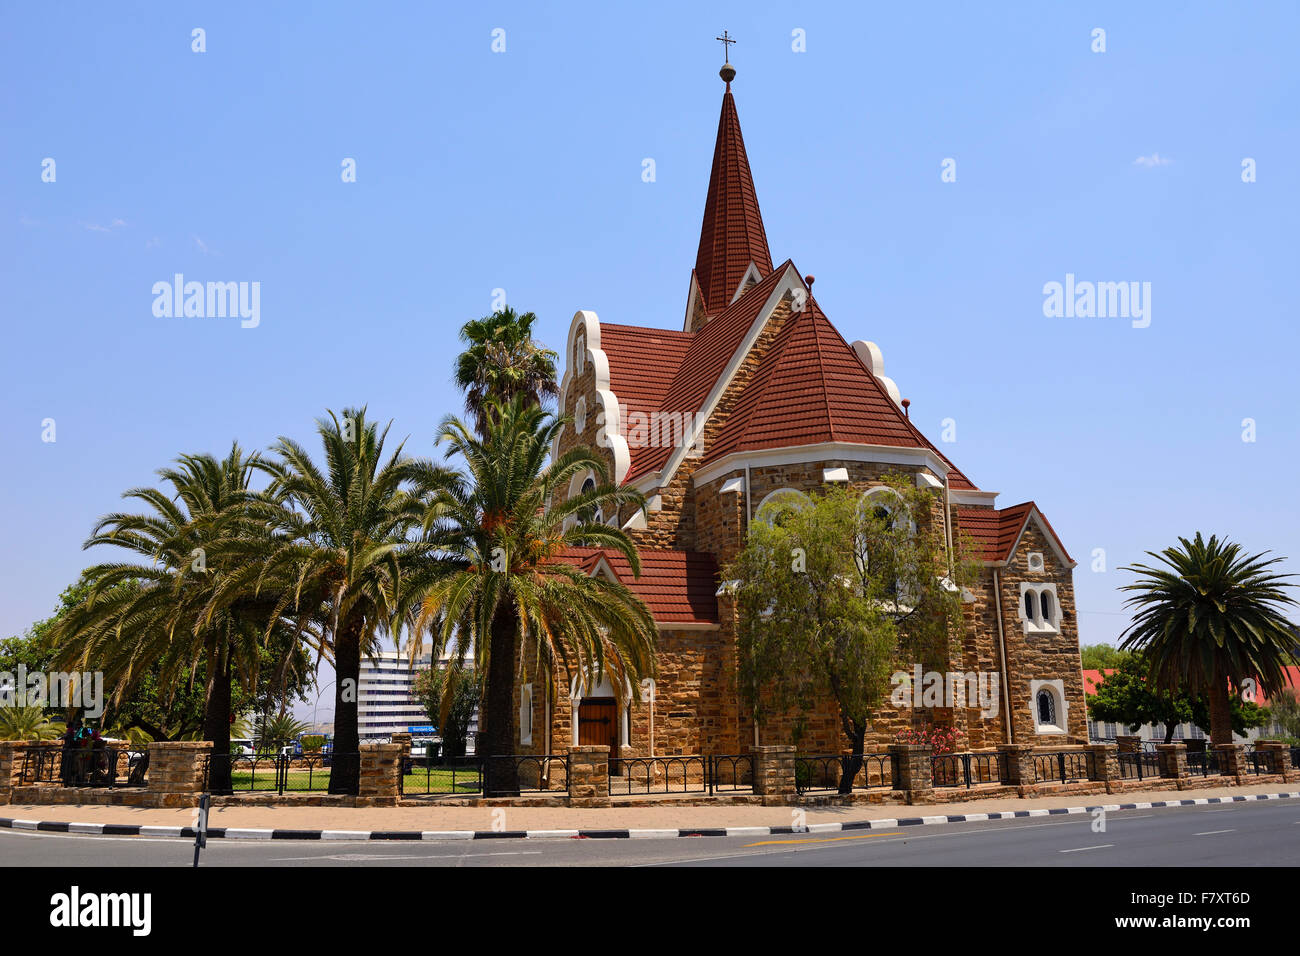 Lutheran Church of Christ (Christus Kirche) in Windhoek, Namibia - Stock Image